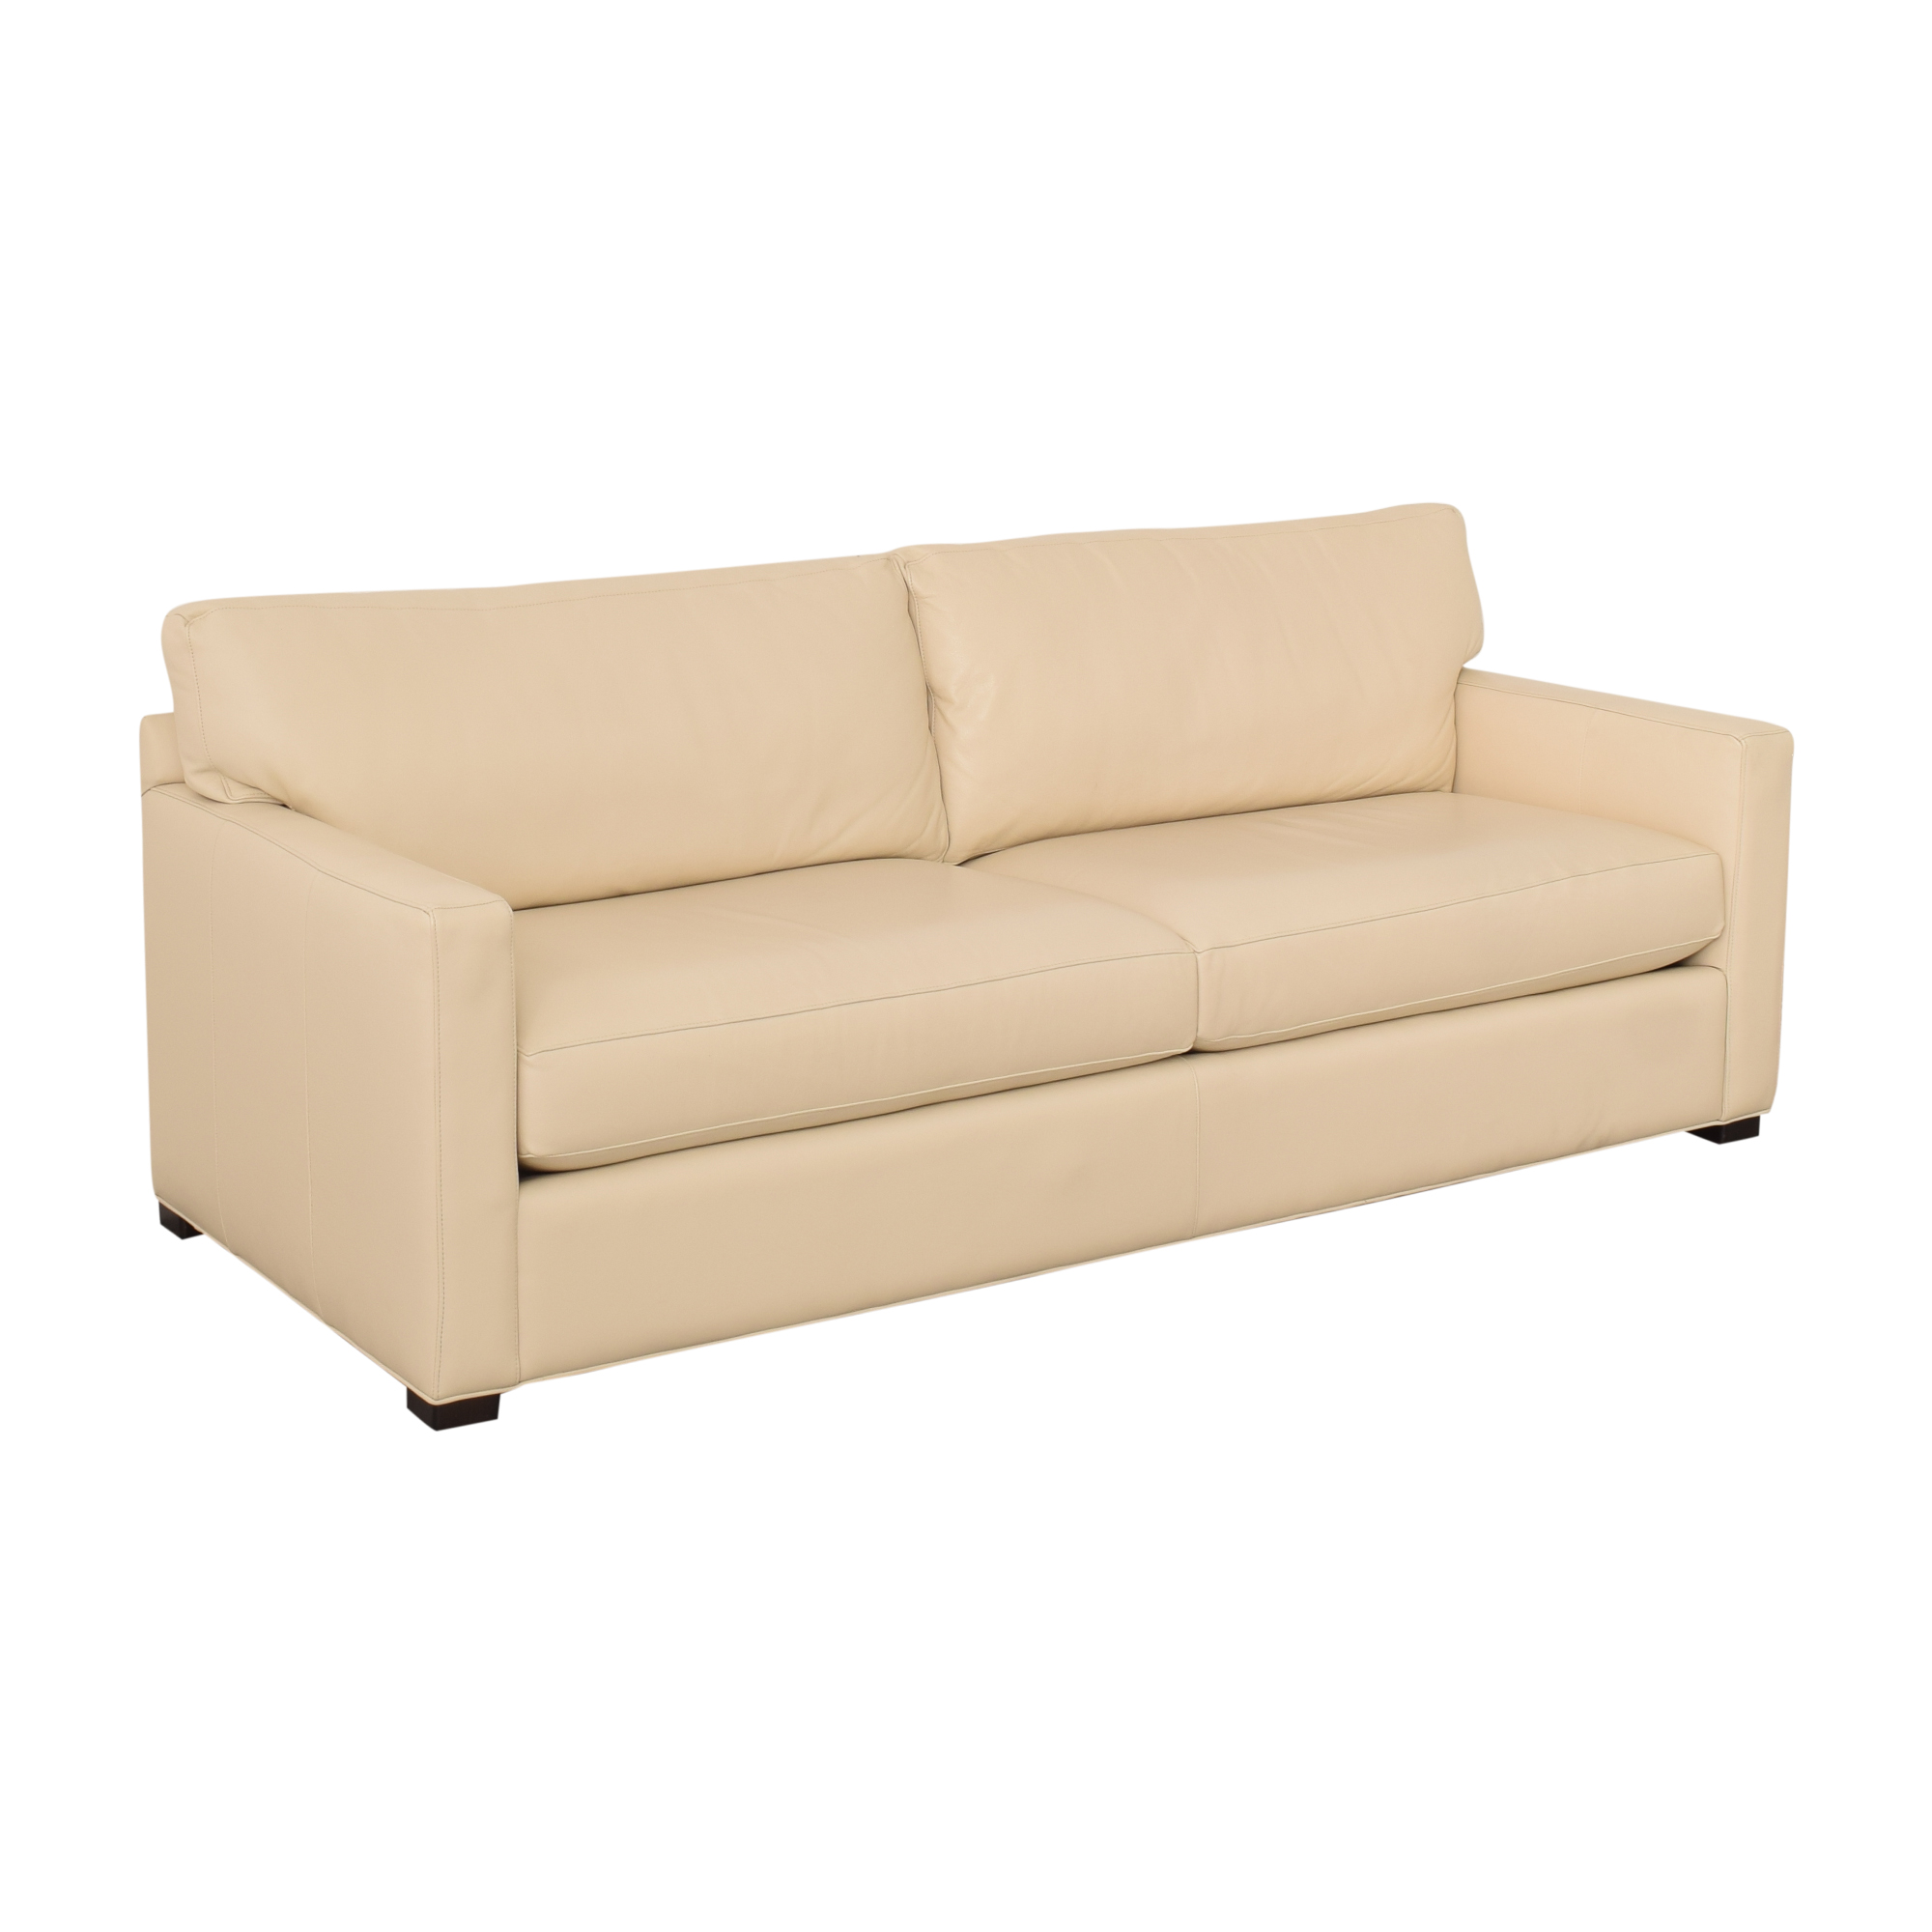 buy Room & Board Room & Board Two Cushion Sofa online